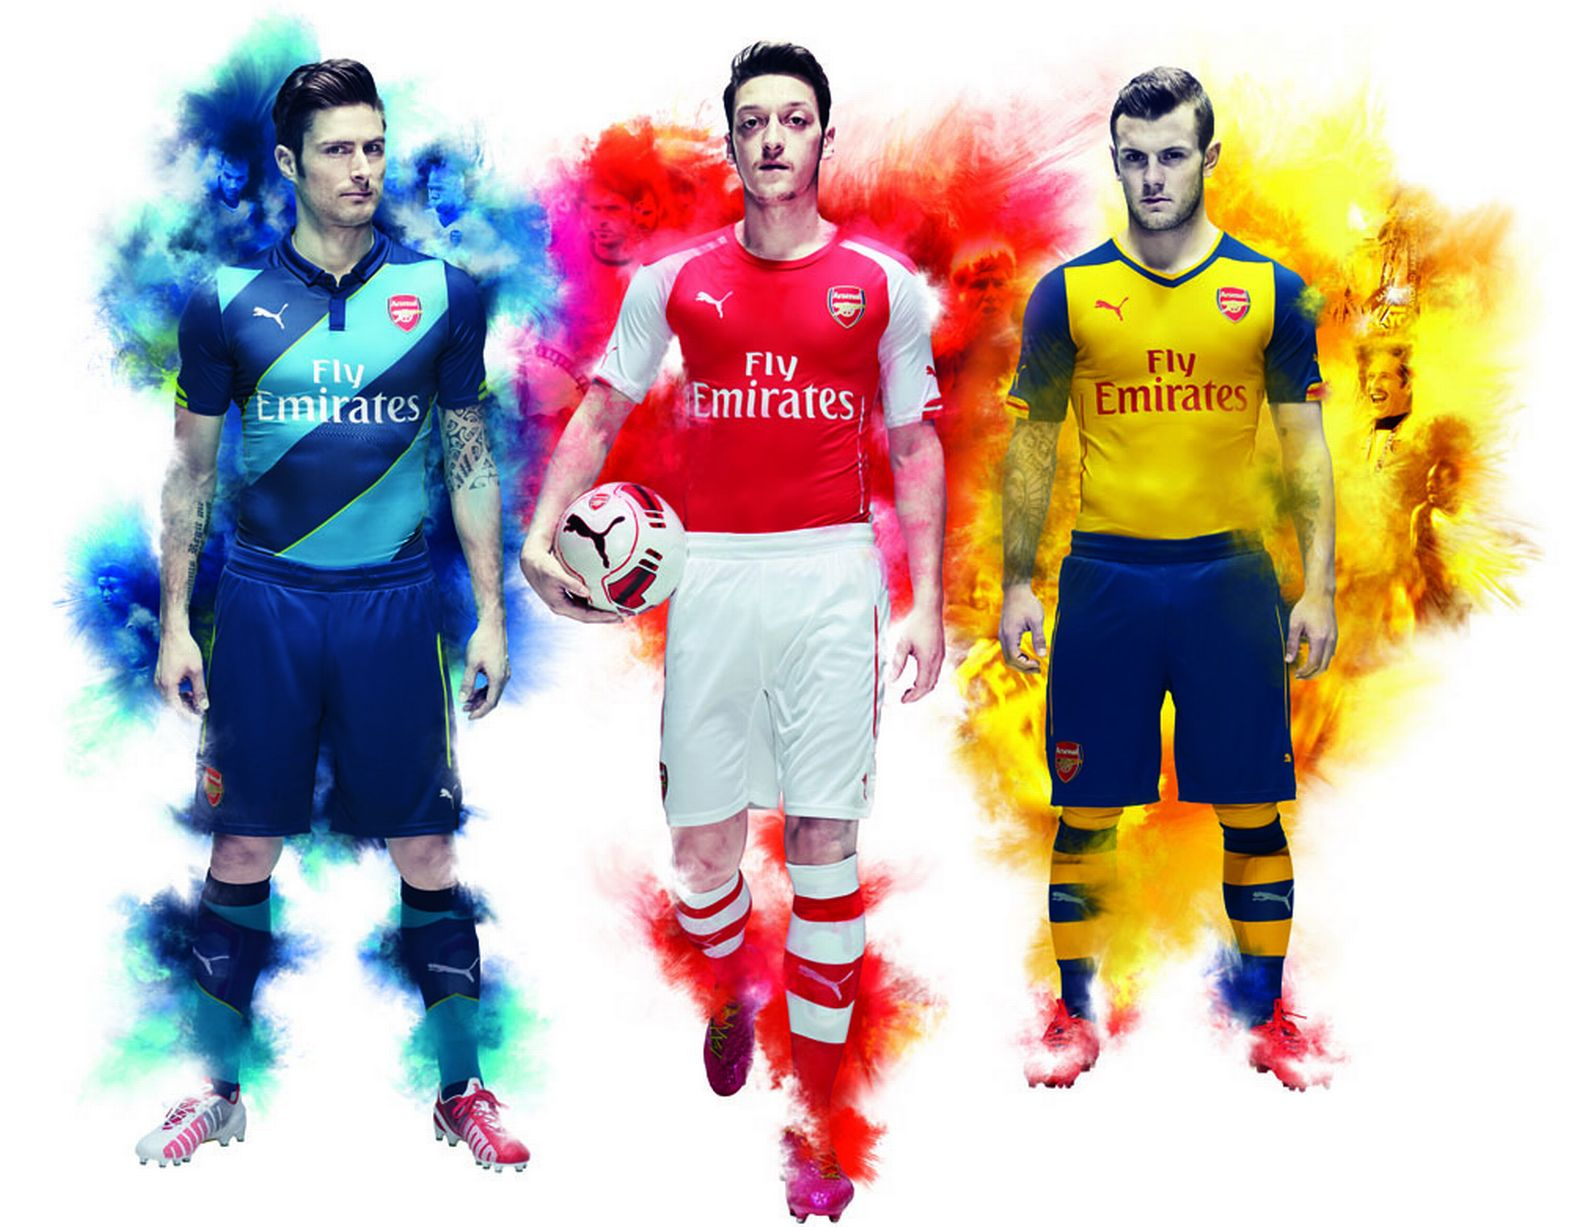 Arsenal FC thread - Page 5 PUMA-launch-Arsenal-2014-15-Kit-Trilogy_Giroud_Ozil_Wilshere_High-Res